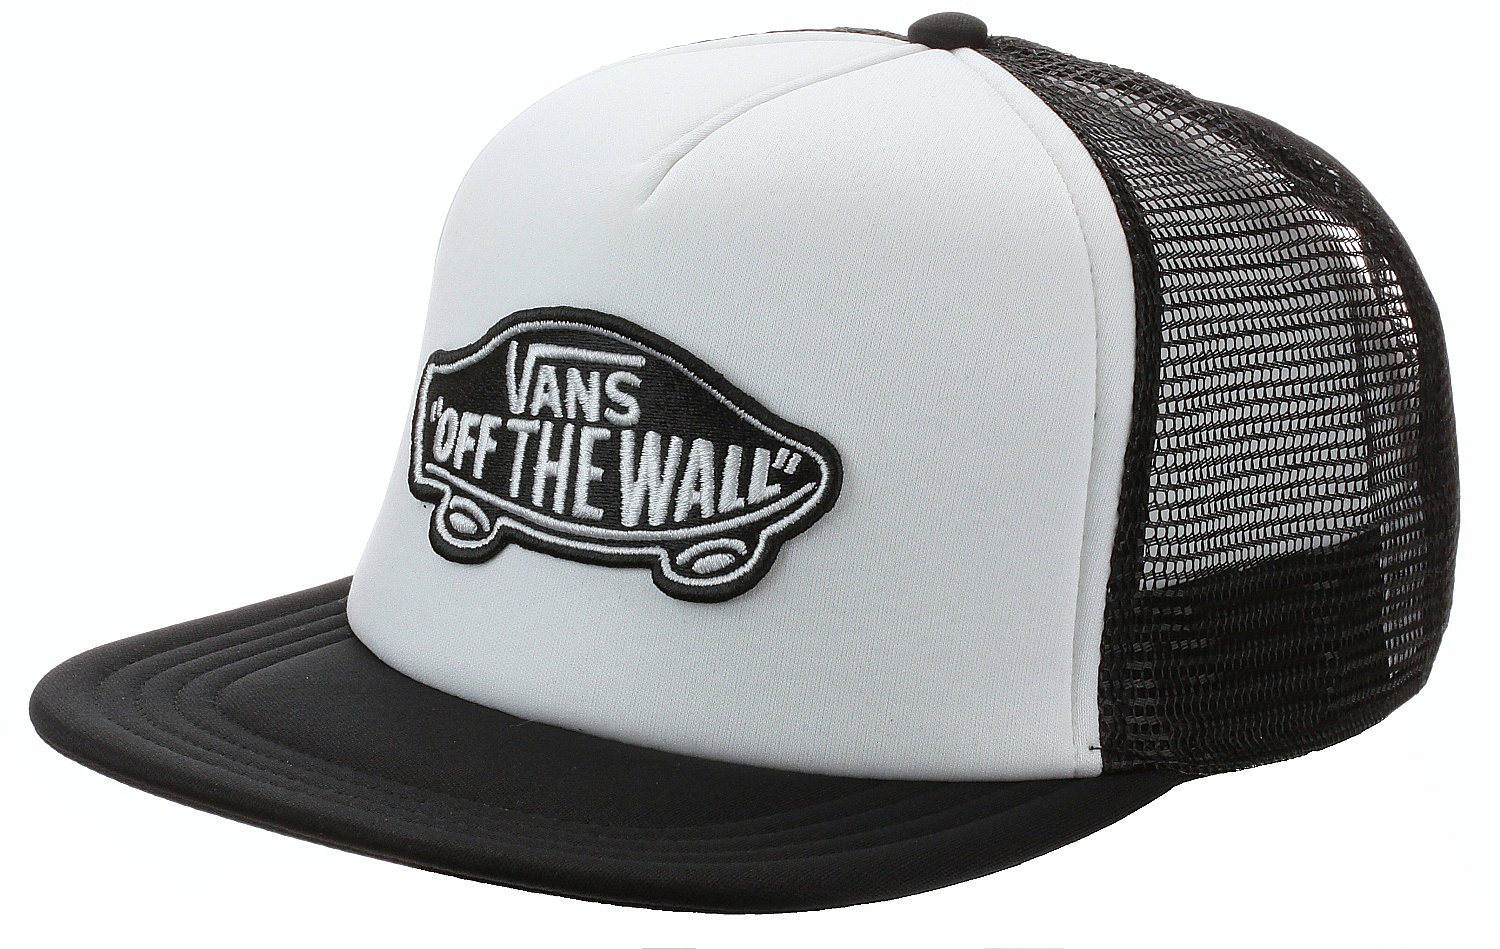 93ce25ac1ae kšiltovka Vans Classic Patch Trucker - White Black one size